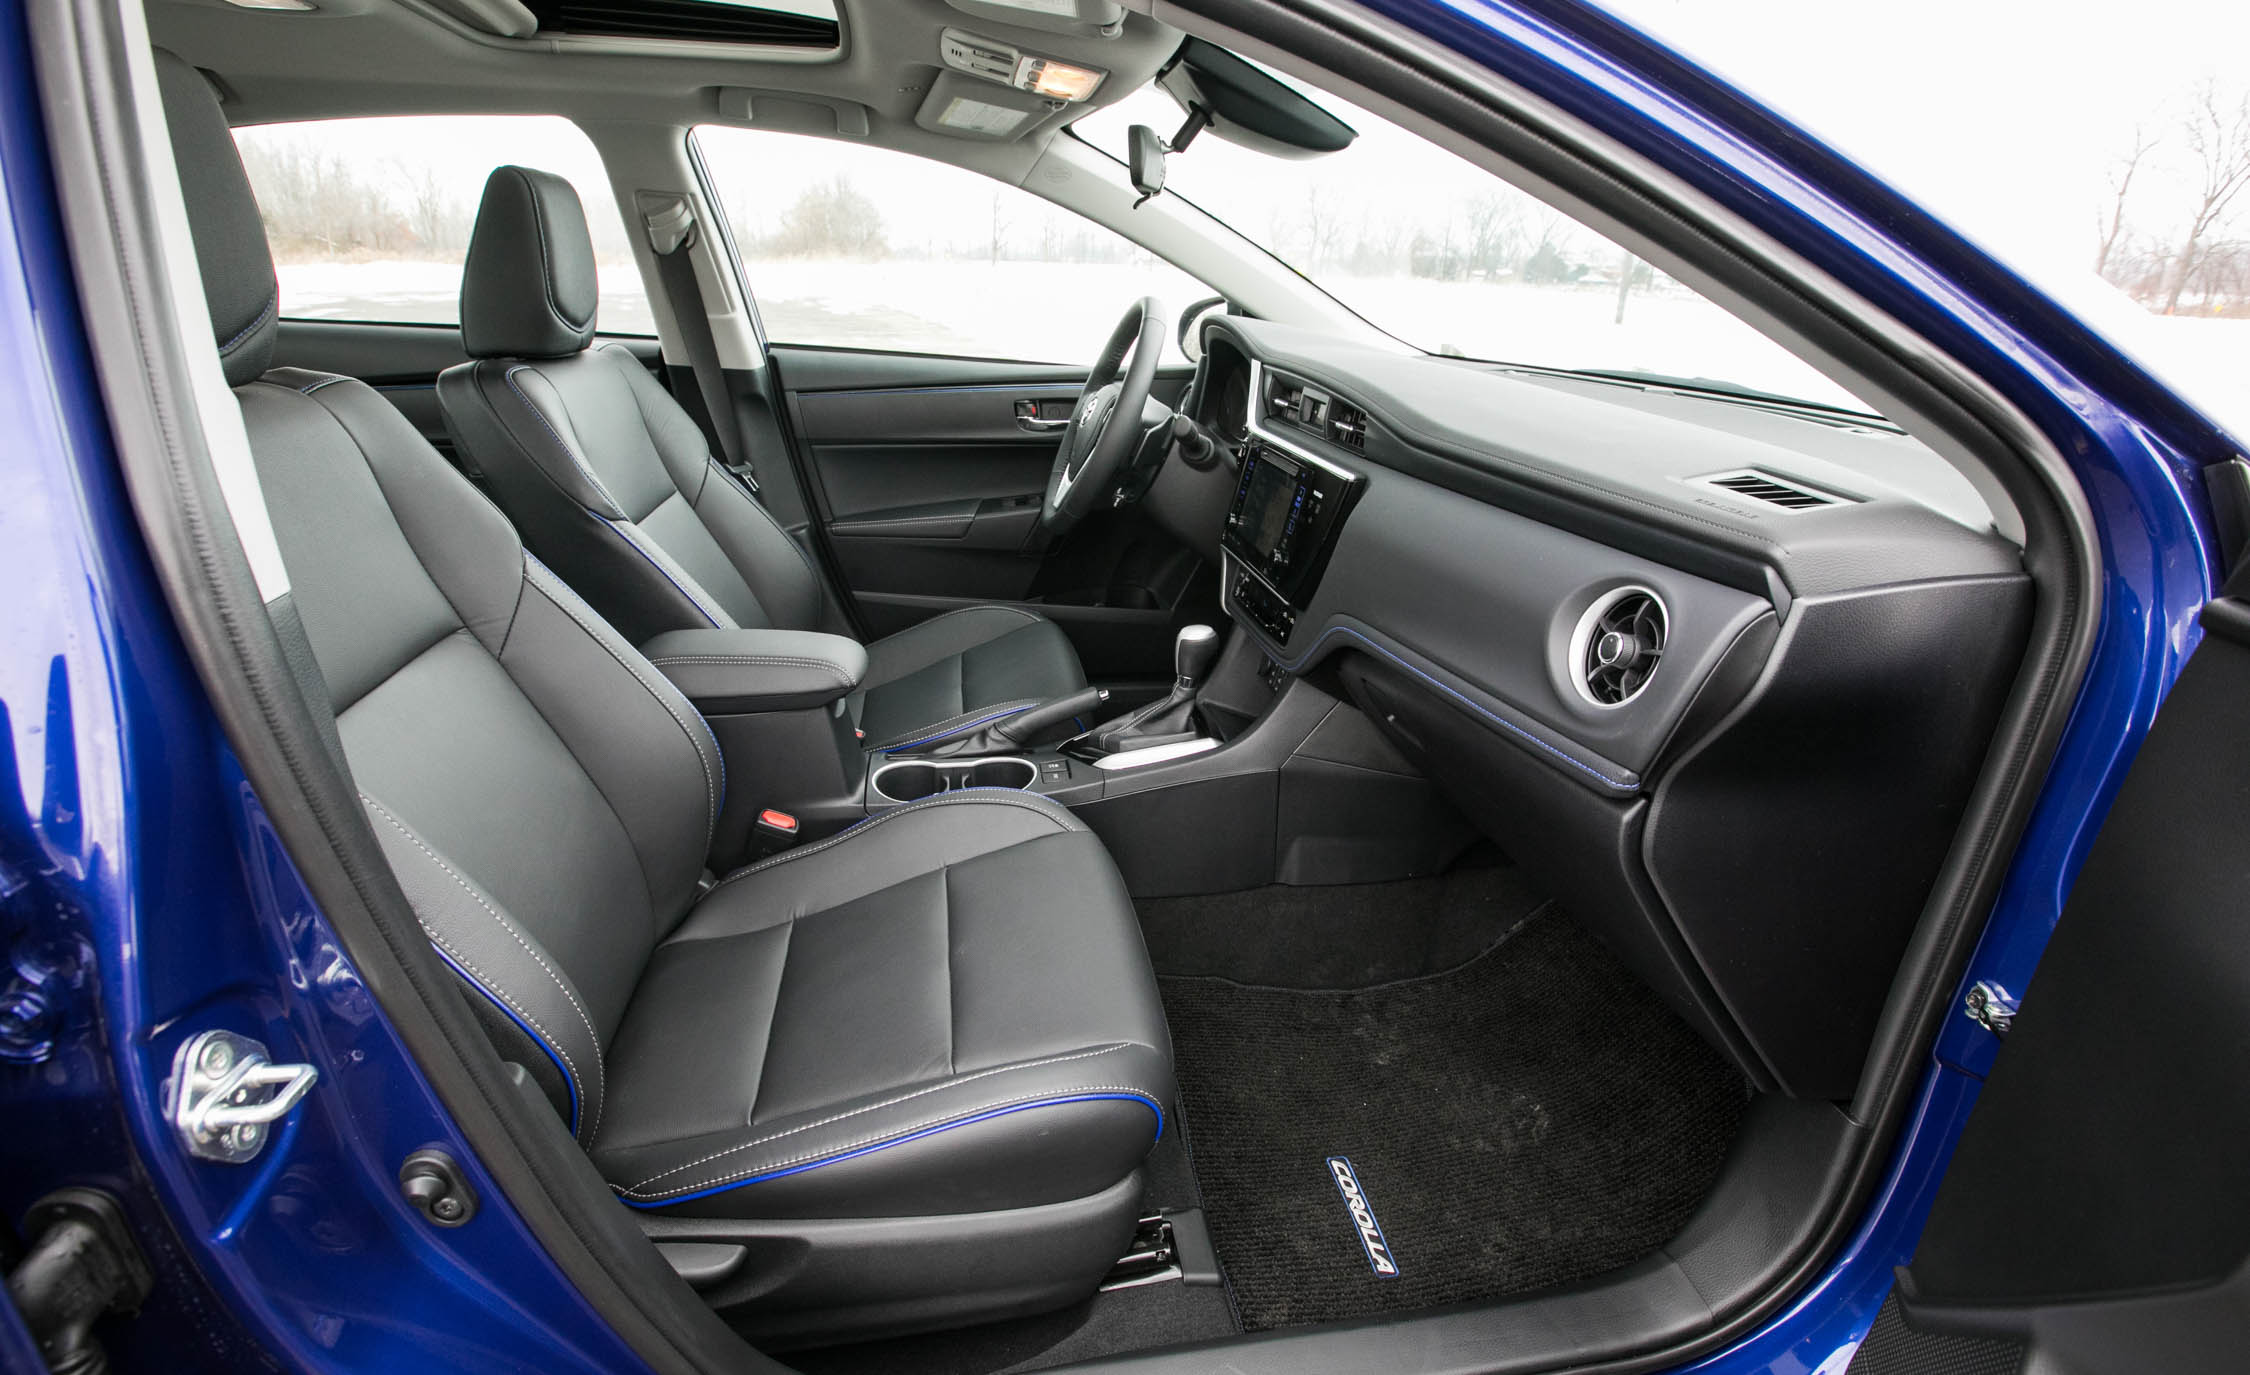 2017 Toyota Corolla XSE Interior Seats Front (View 50 of 75)